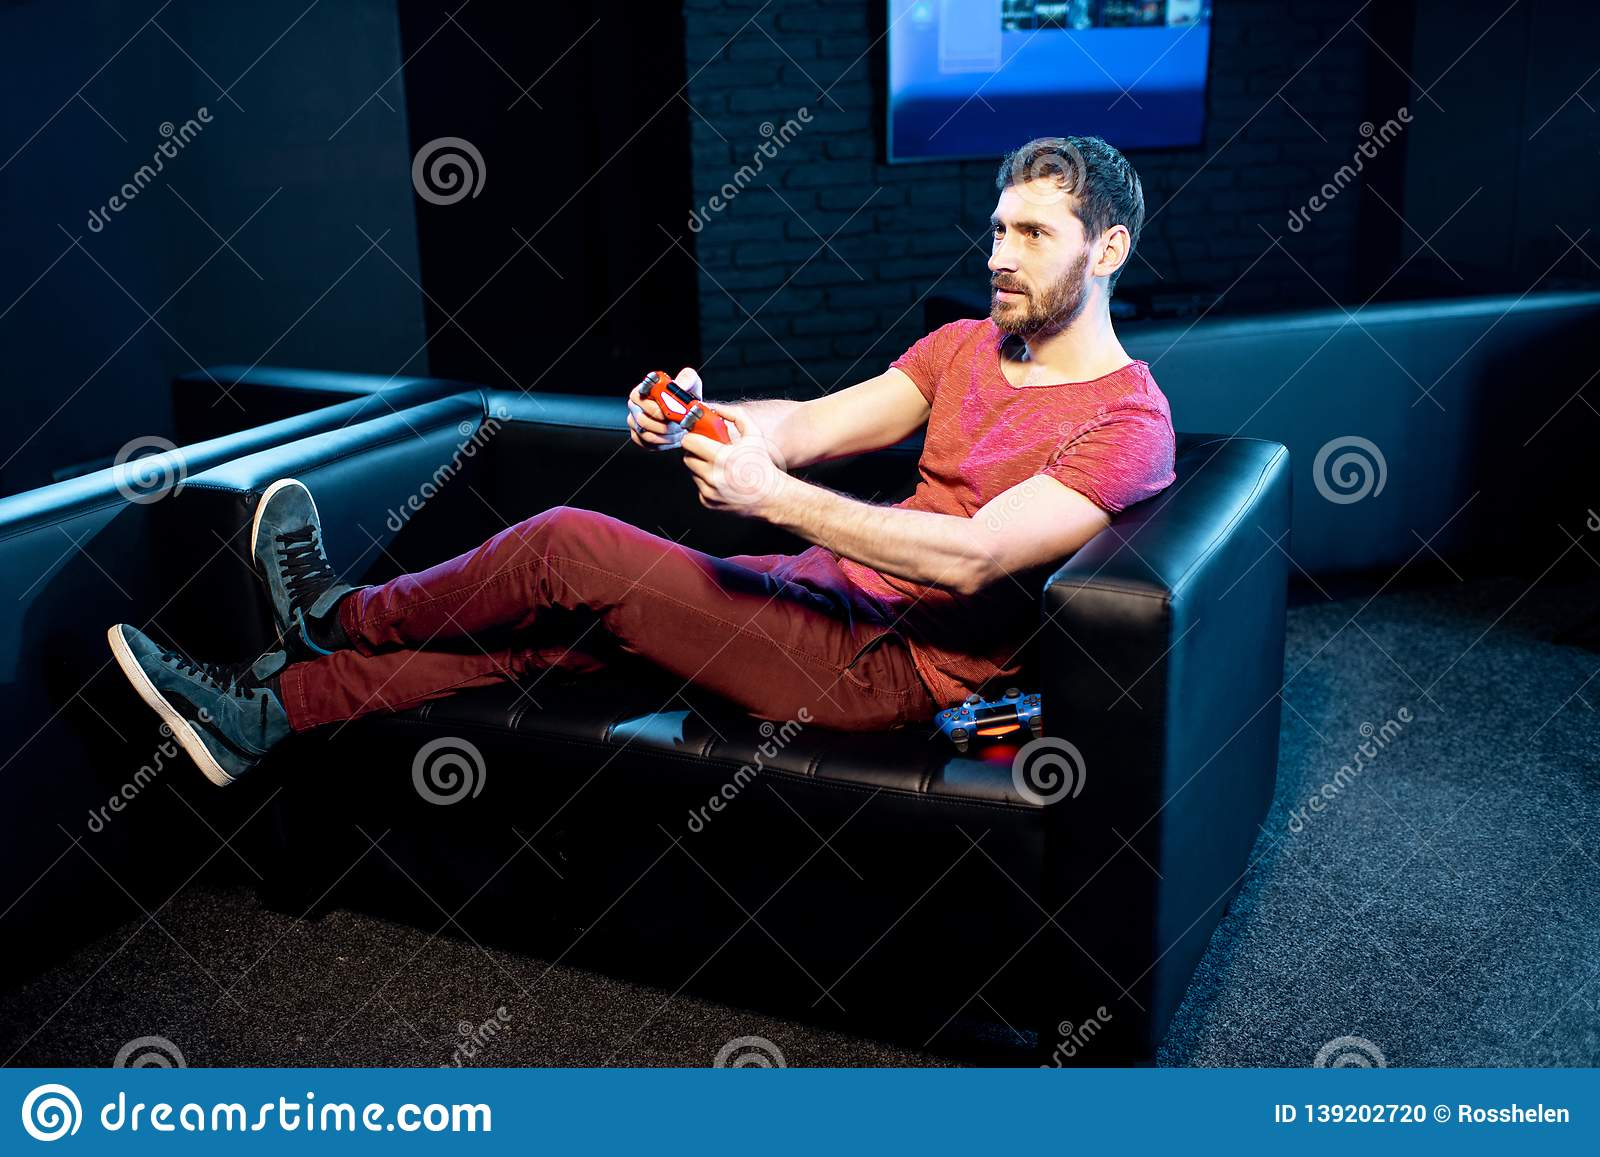 Man playing video games with gaming console in the club